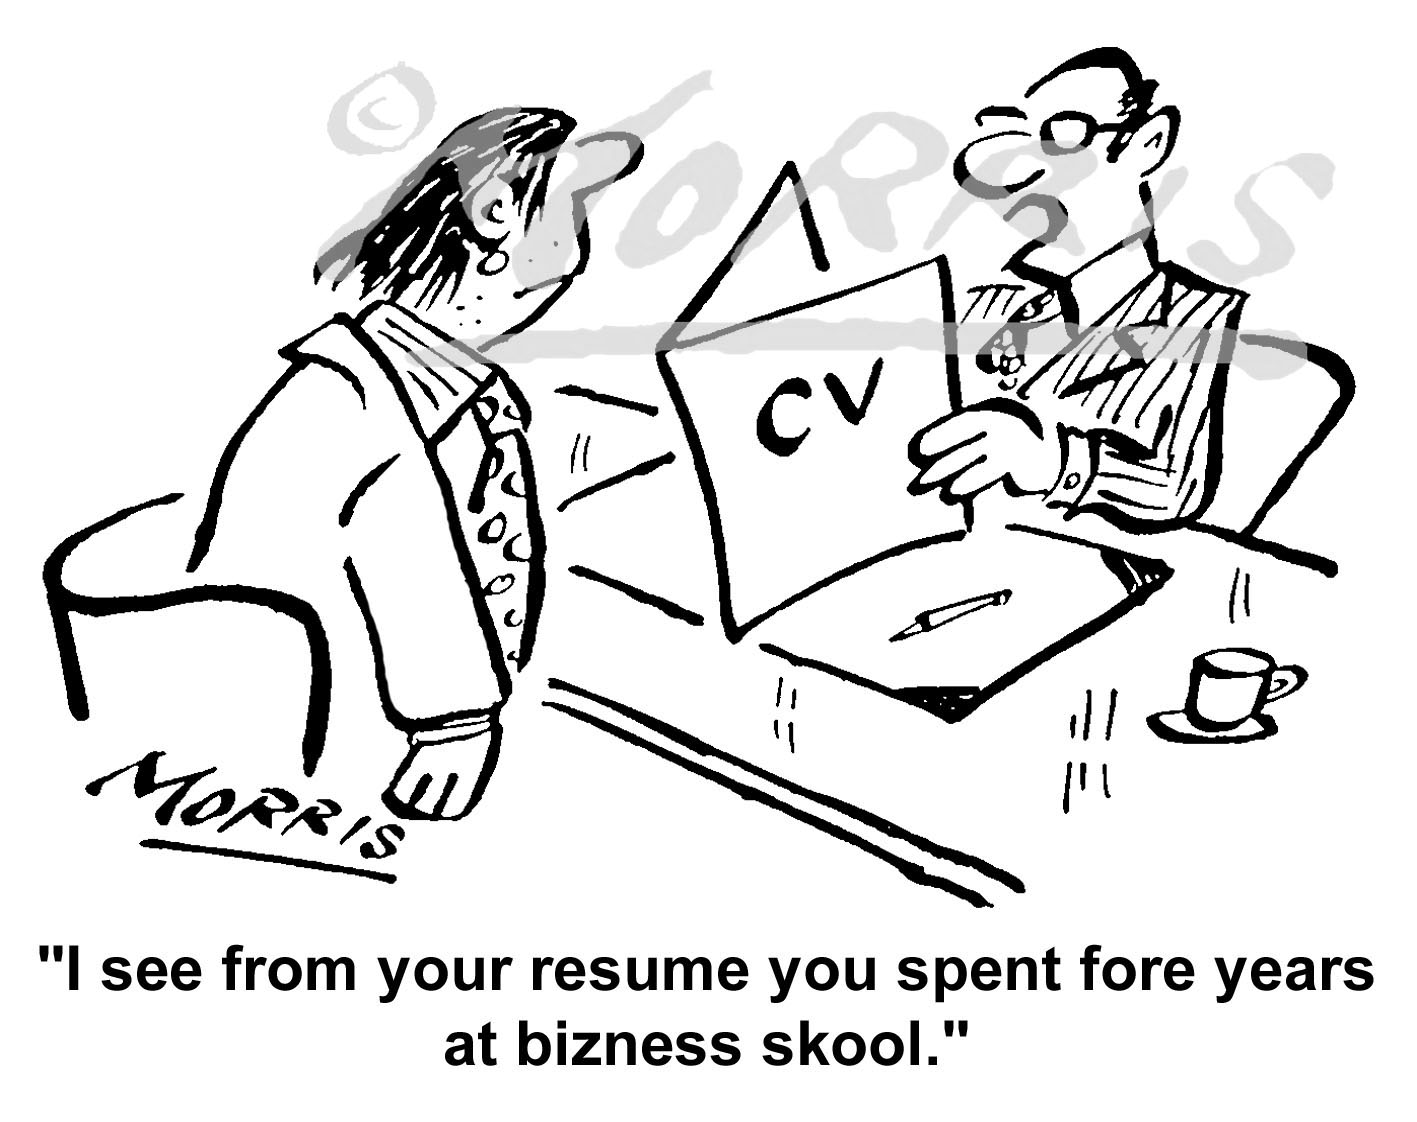 CV cartoon, Resume cartoon, Interview cartoon – Ref: 3863bw